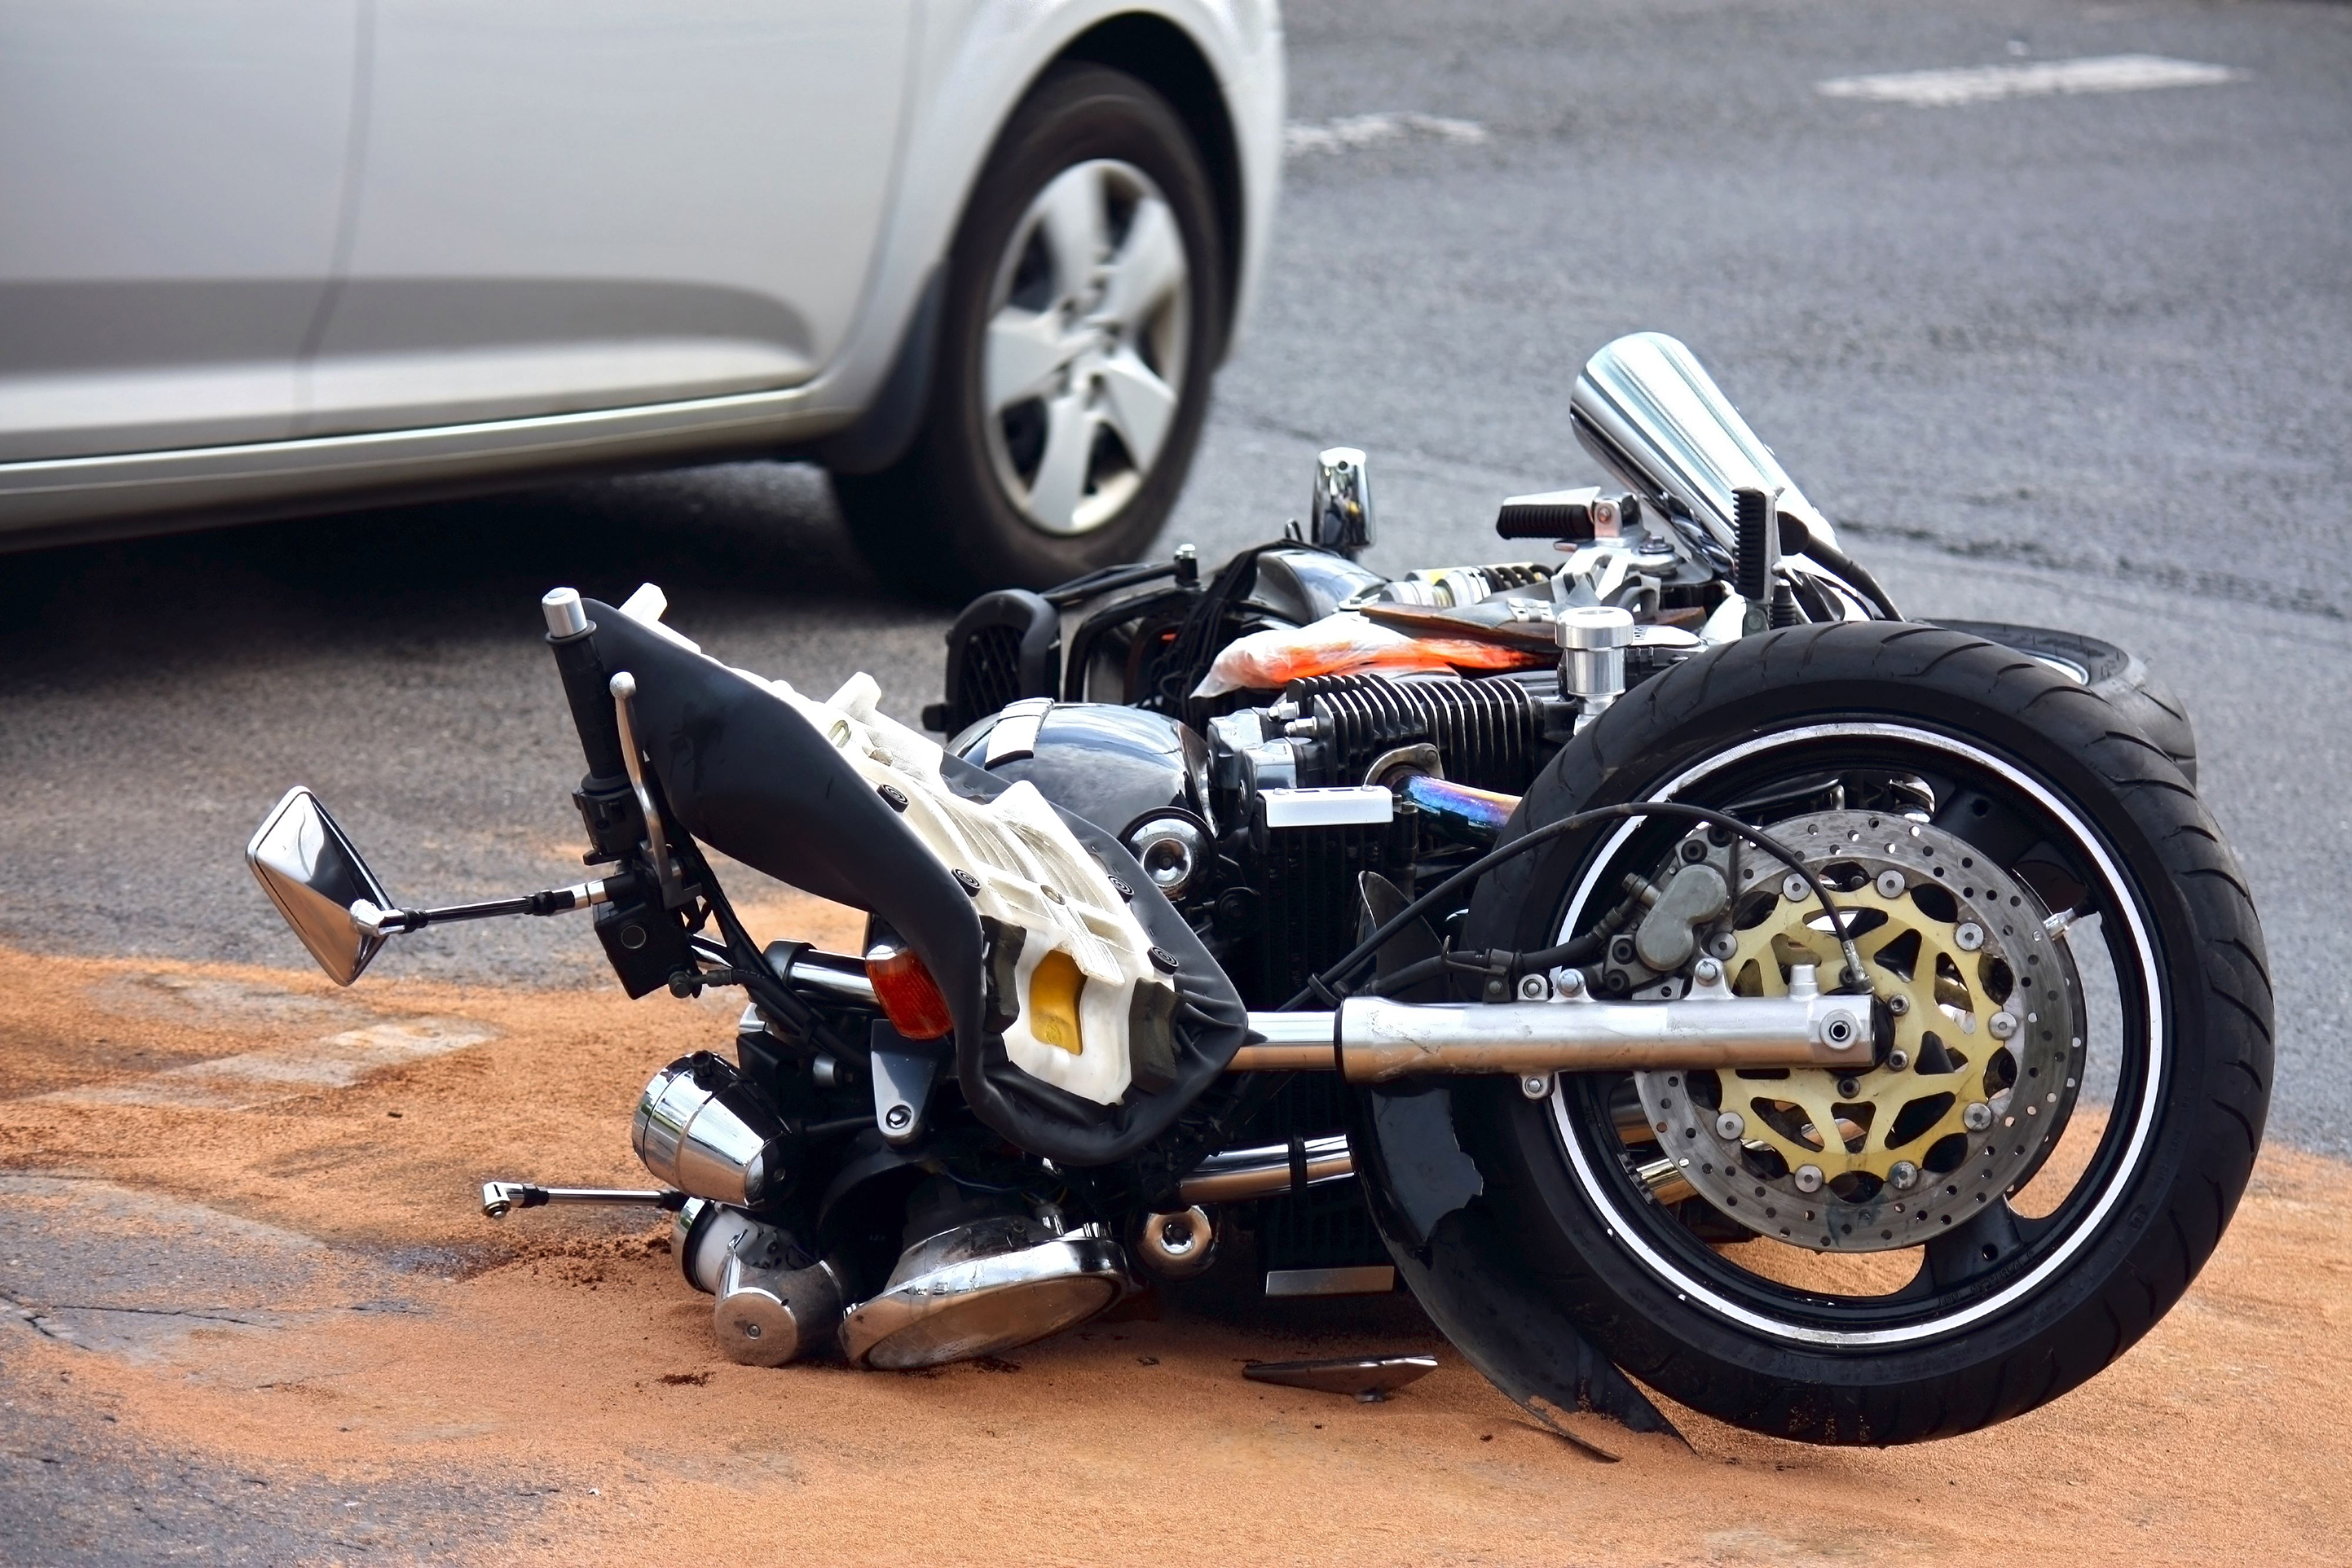 Motorcycle laying on the road after an accident